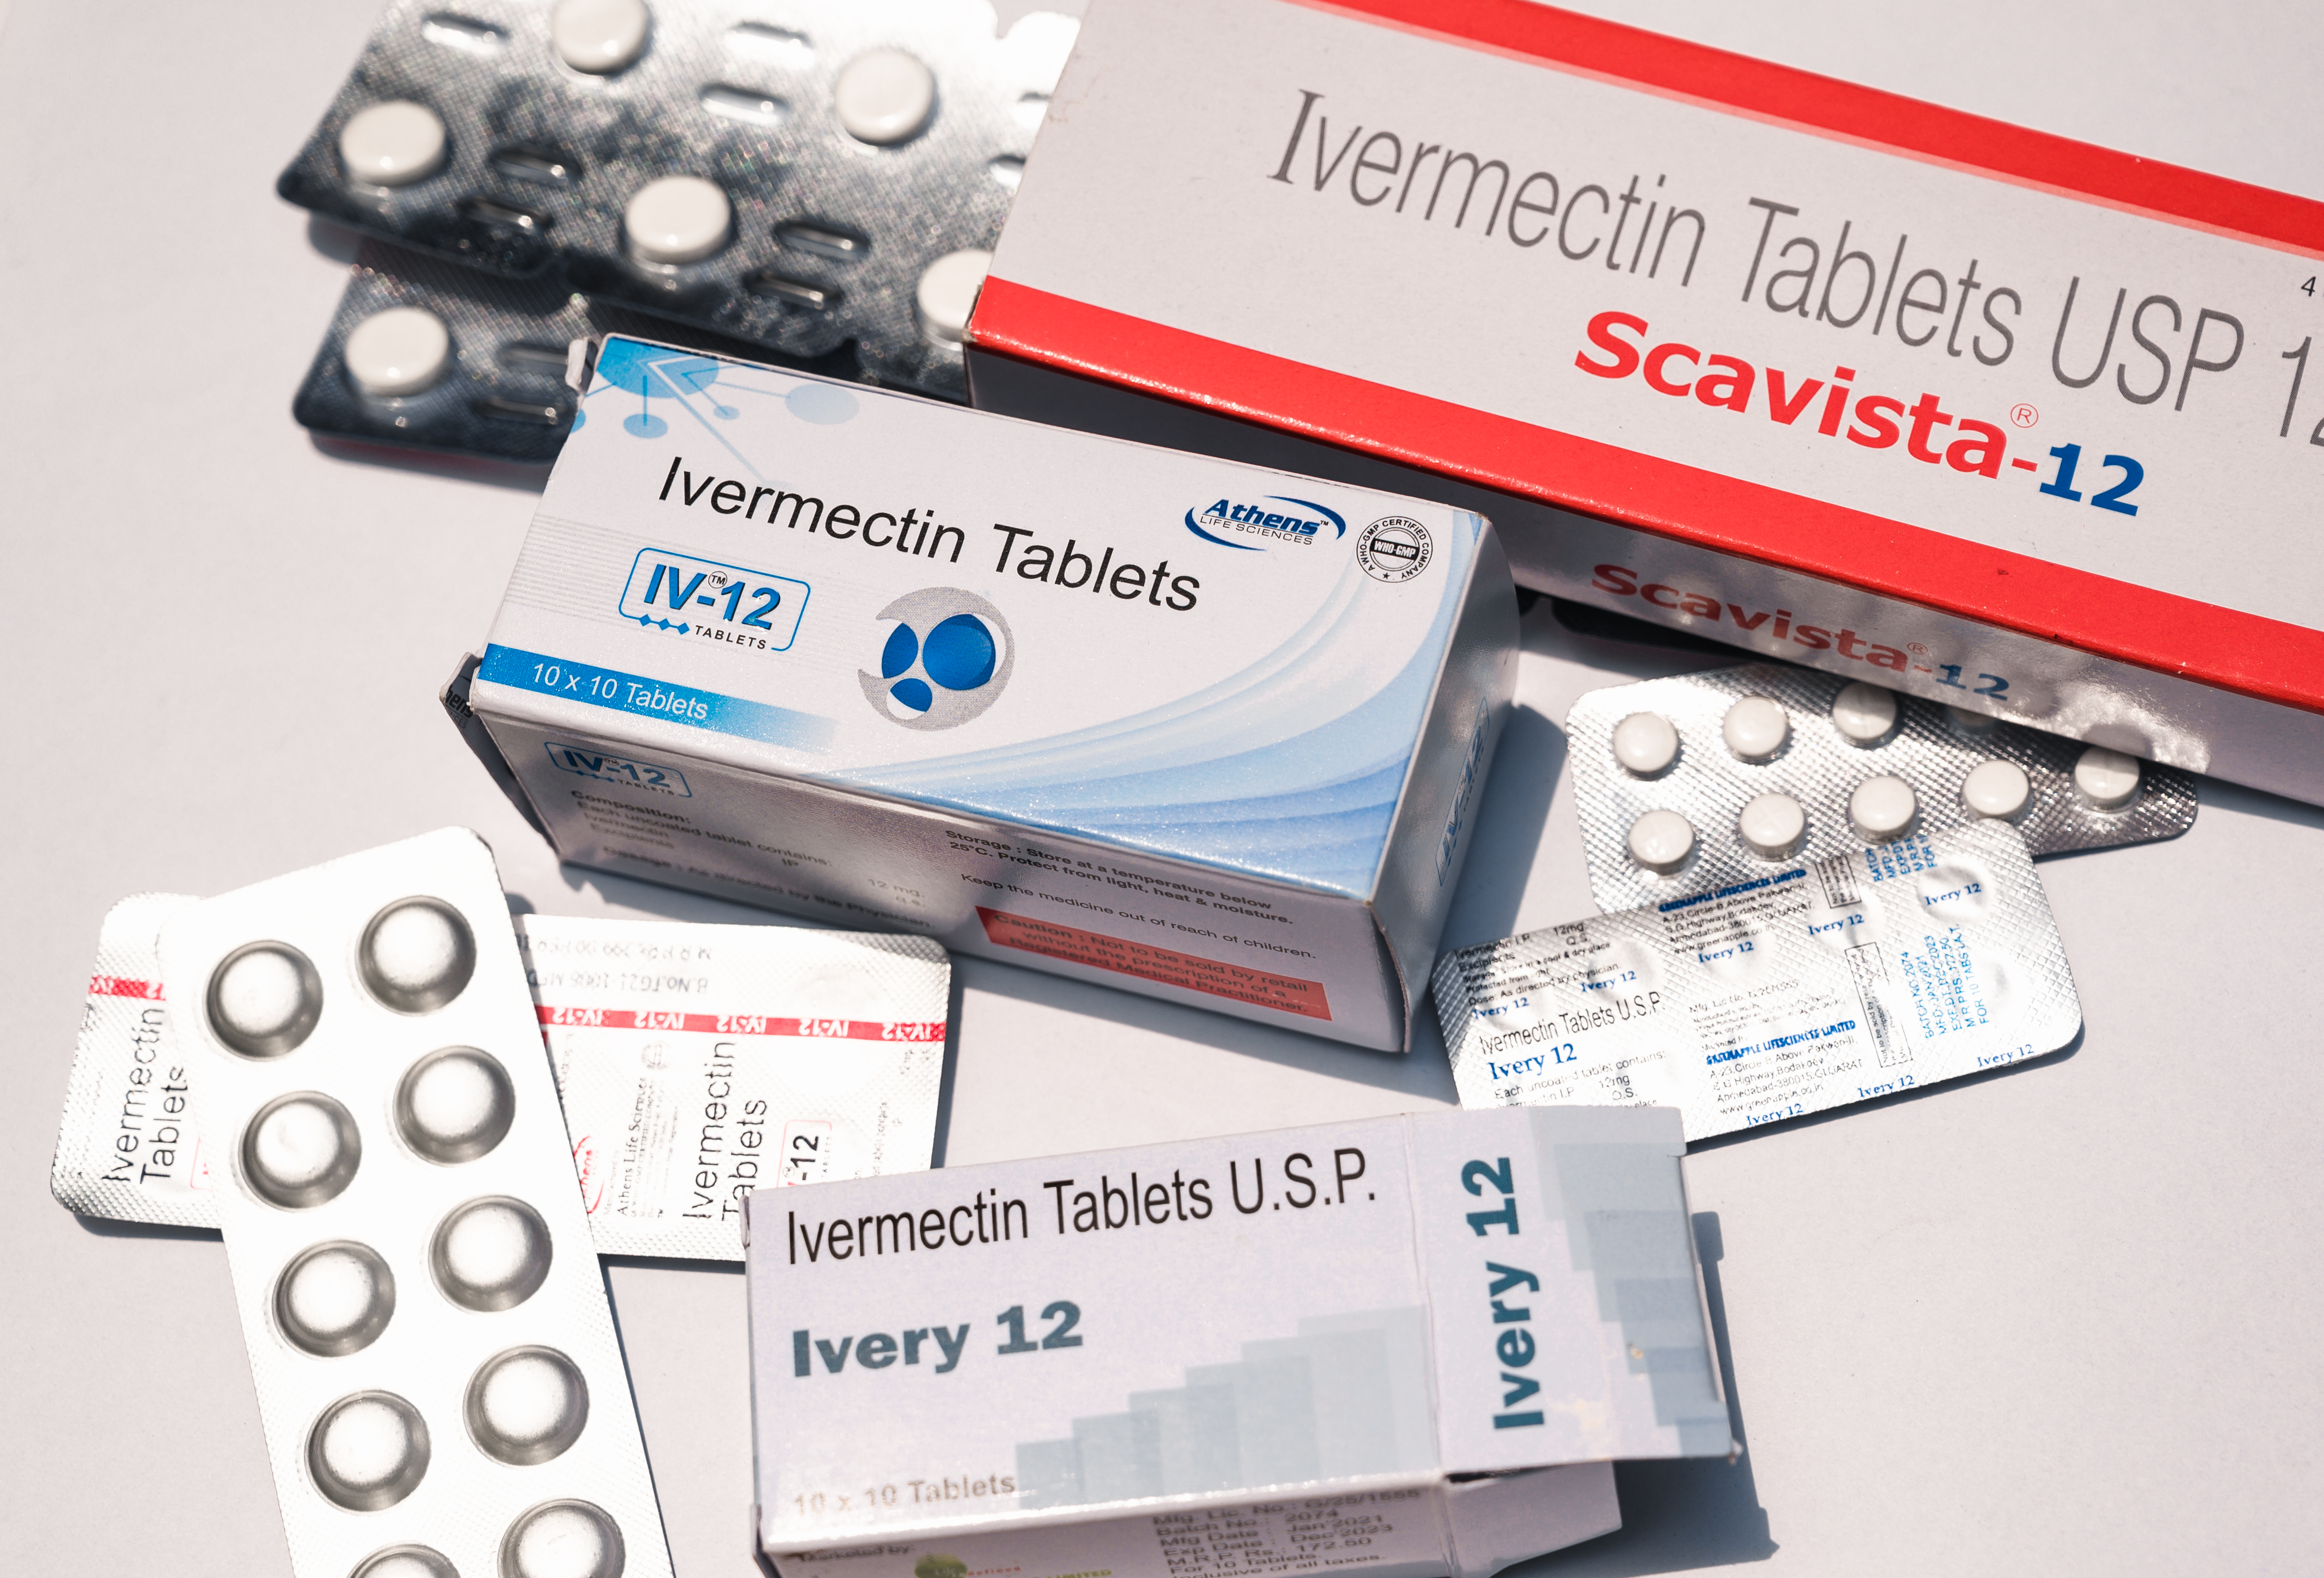 An assortment of boxes and blister packs of ivermectin.